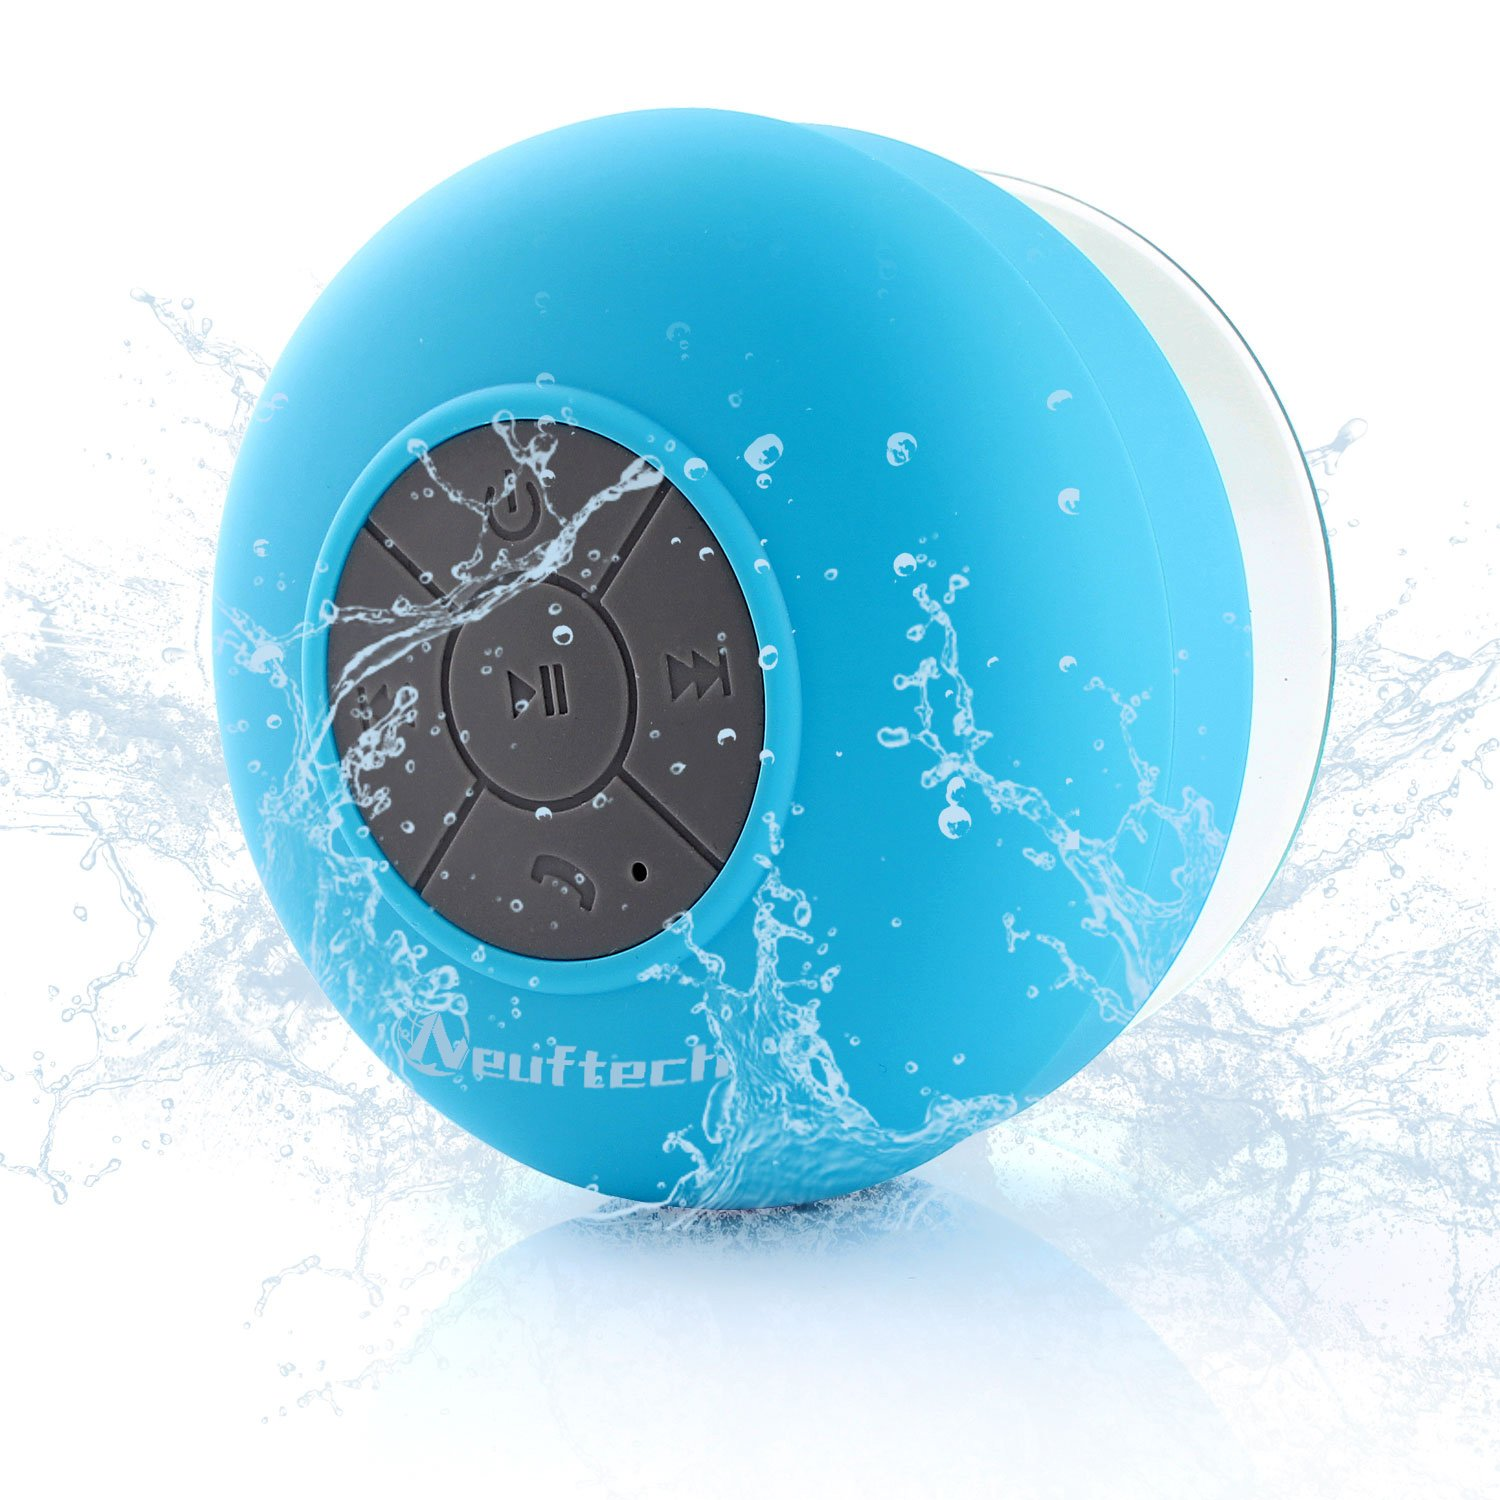 Mini Portable Speakers Neuftech HIFI Waterproof Shower Pool Wireless Bluetooth Speaker with Suction Cup Handsfree, Up to 5-Hour Playtime, Built-in Microphone for Calls for iPhone, iPod, iPad, Samsung, Echo, LG and others (Blue) EU-Mini_Yingxiang_MicBLUE